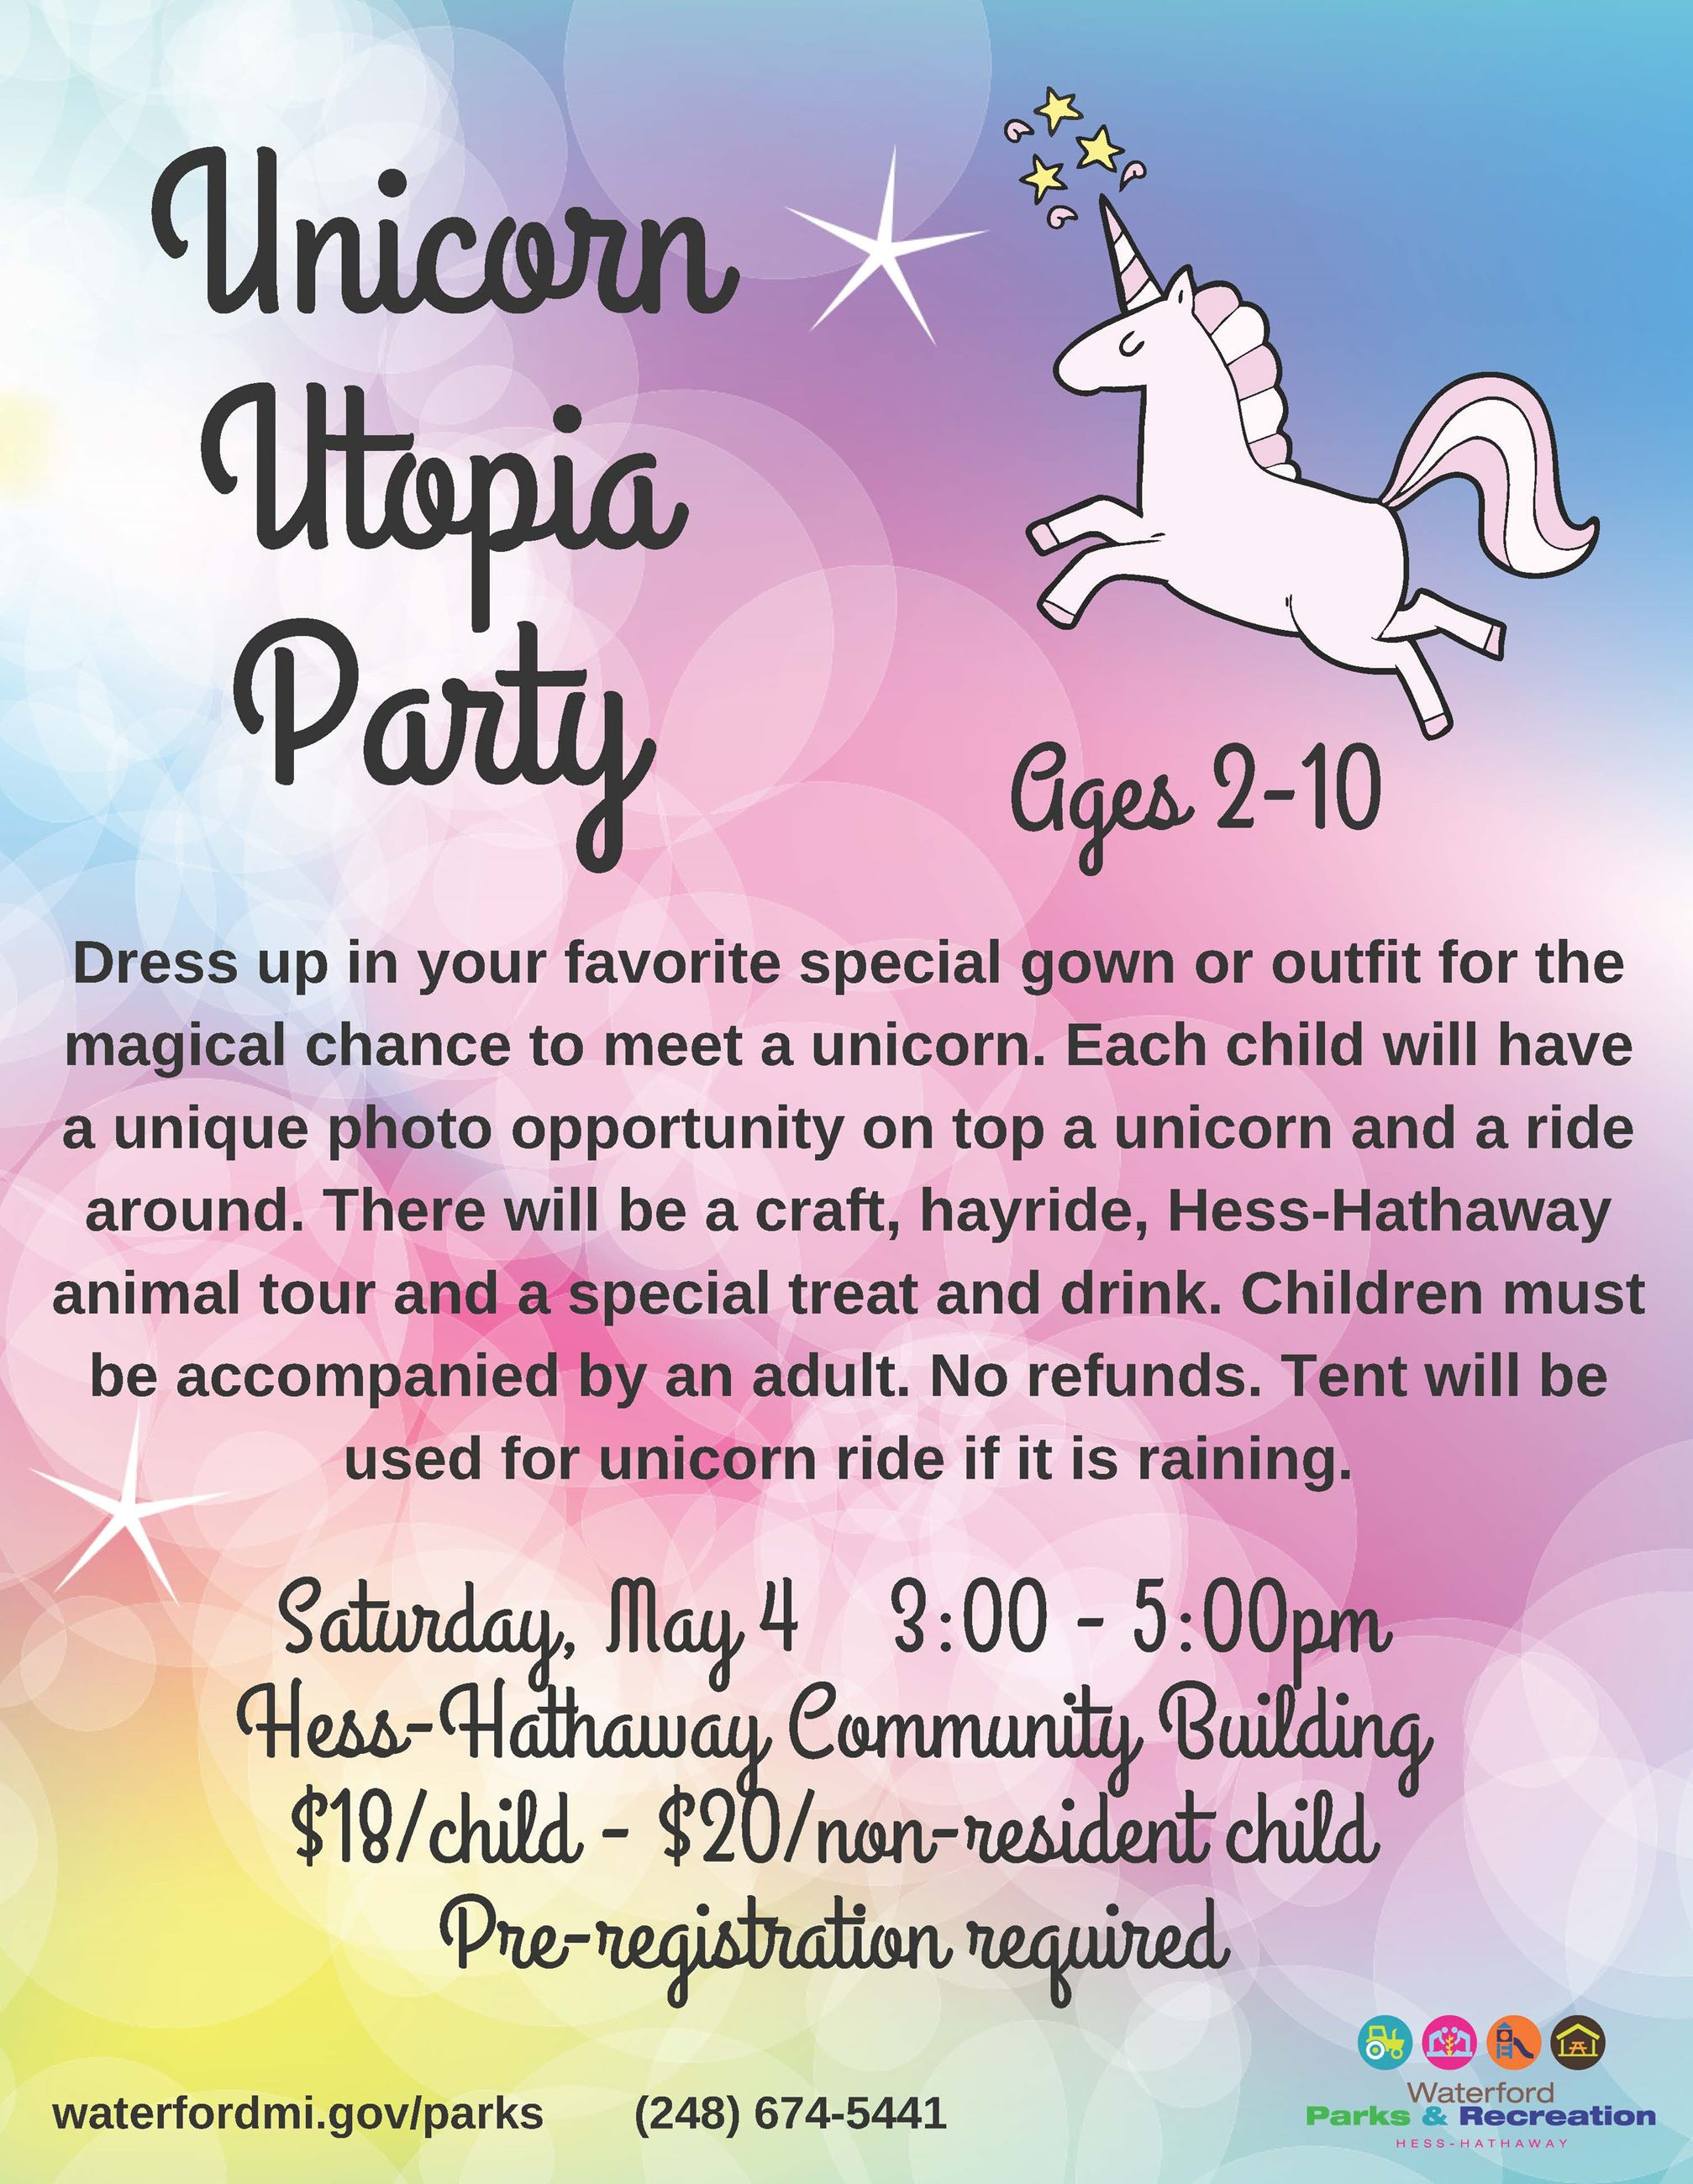 Unicorn Flyer - May 2019